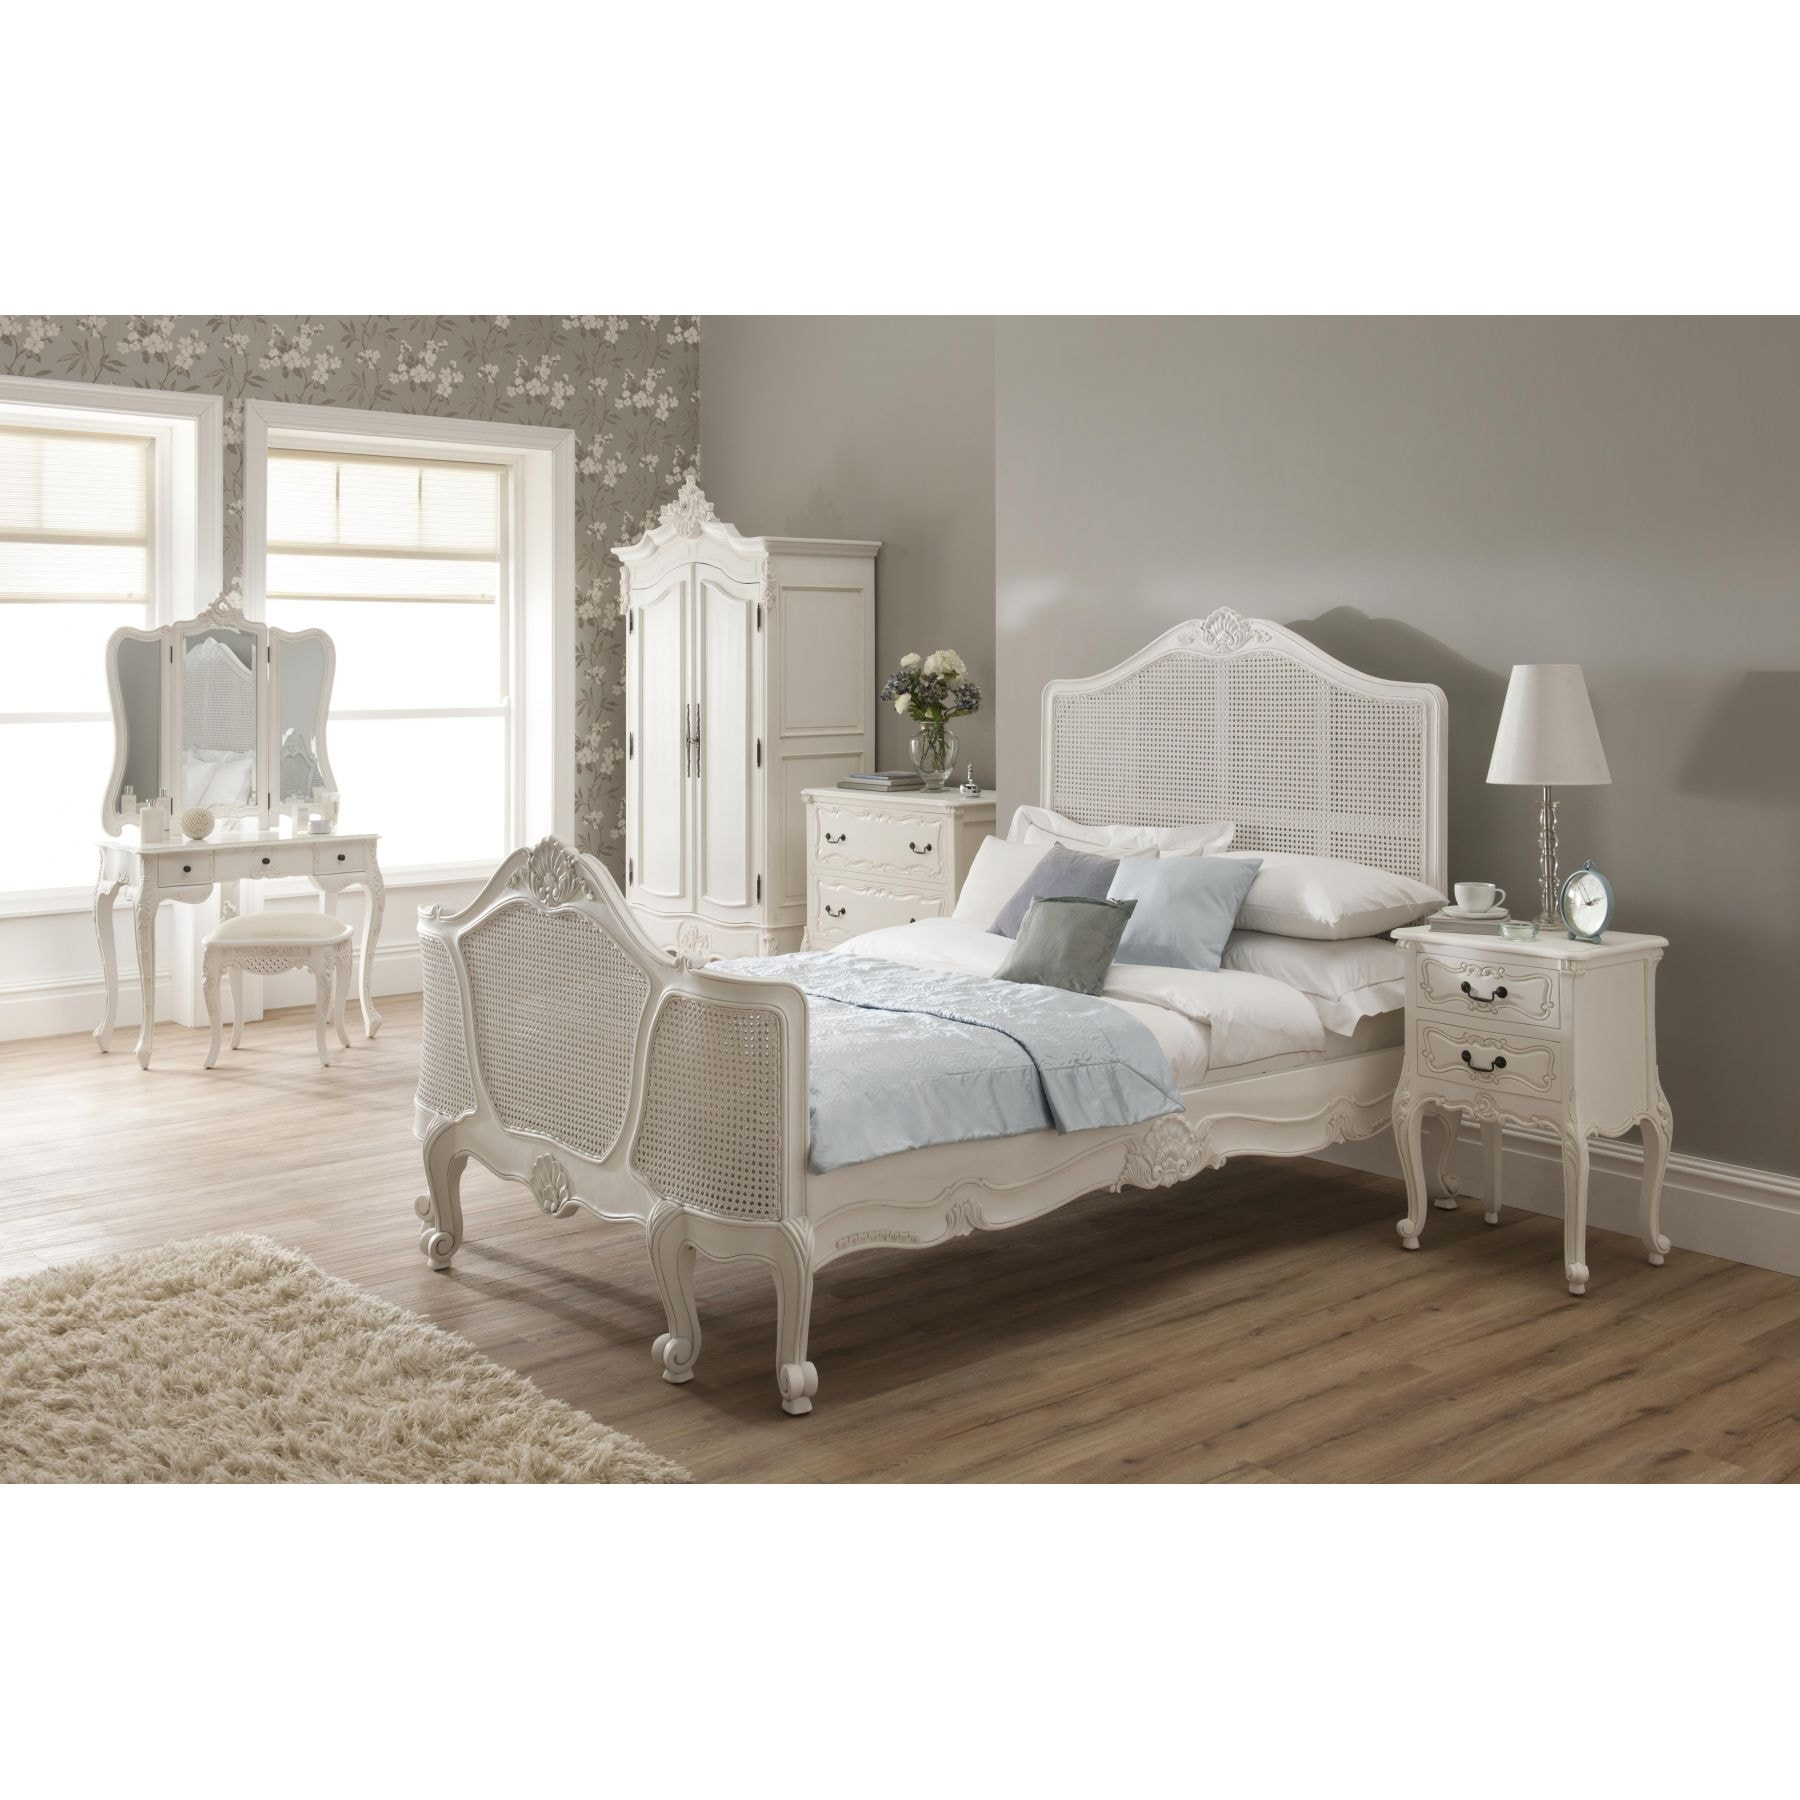 18bb32550bfd6 La Rochelle Rattan Antique French Style Bed